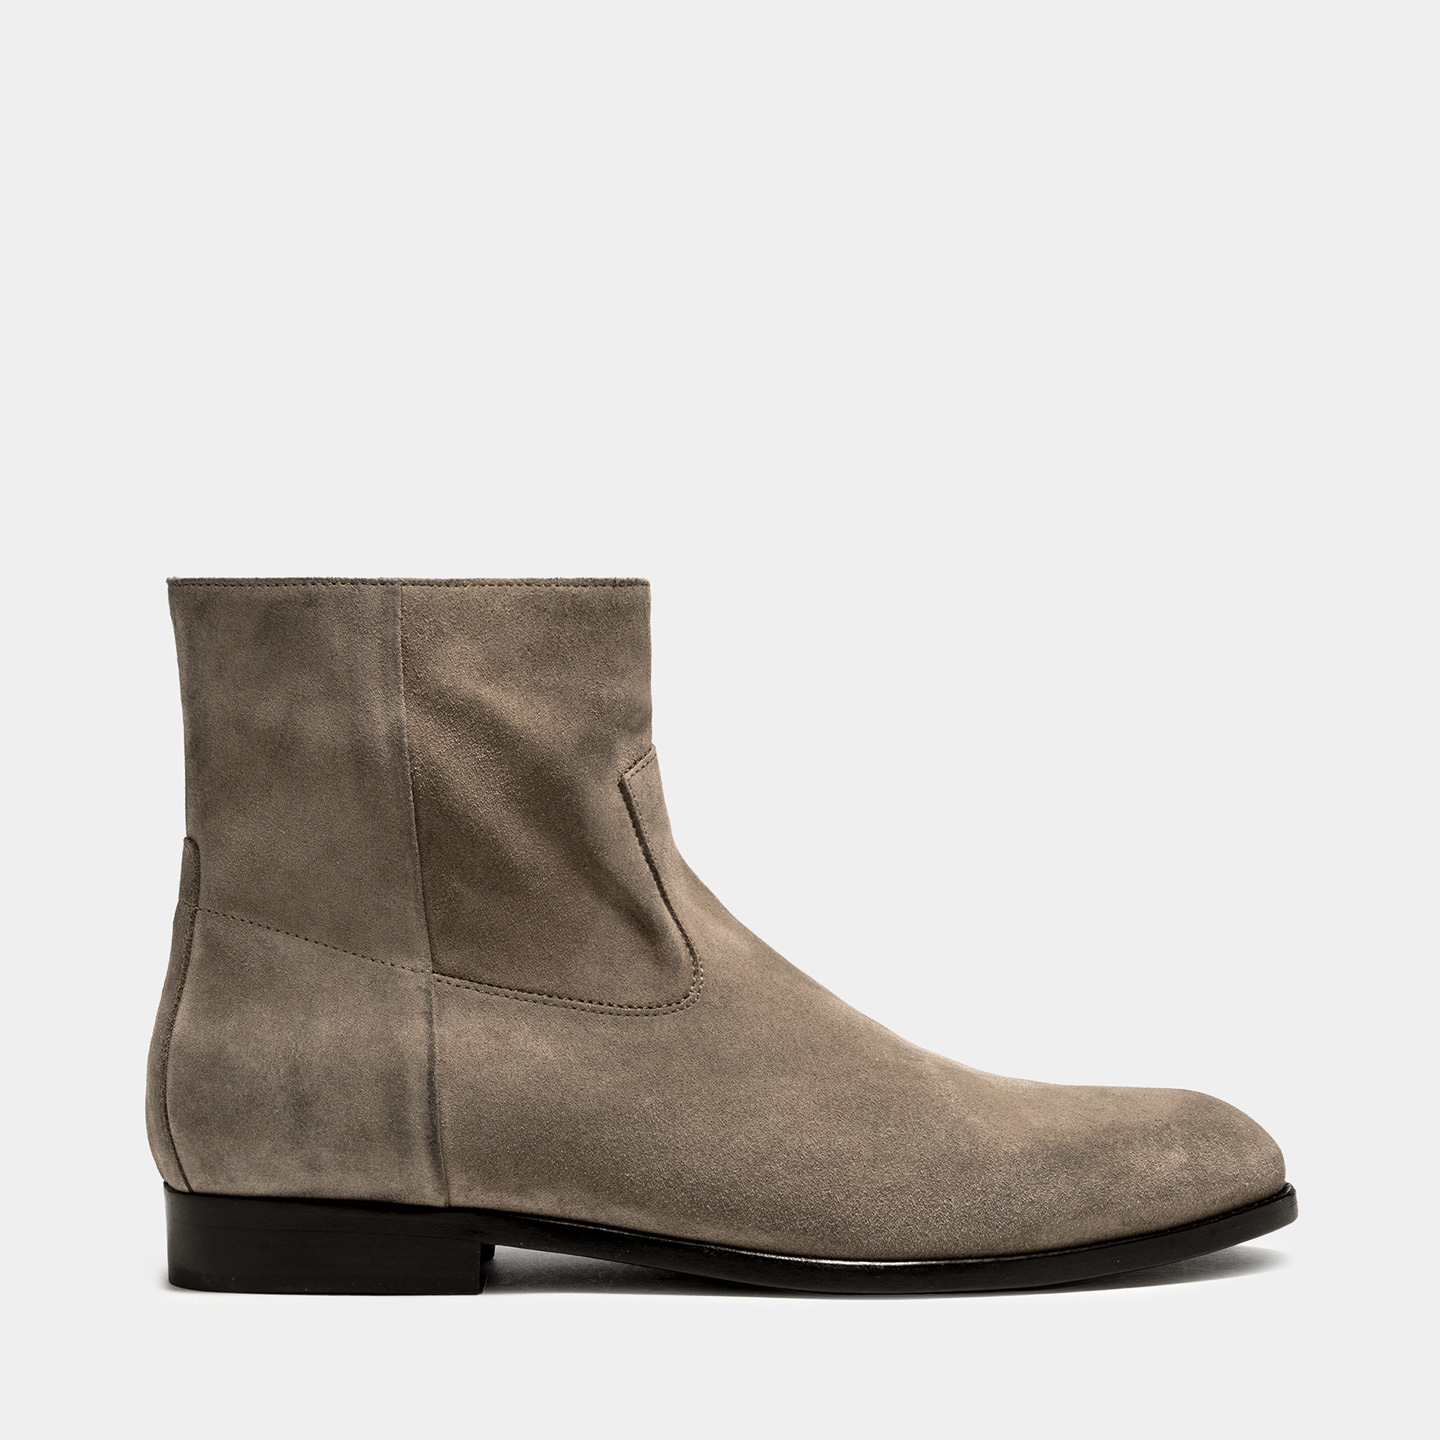 BUTTERO: FLOYD BOOTS IN ANTELOPE SUEDE